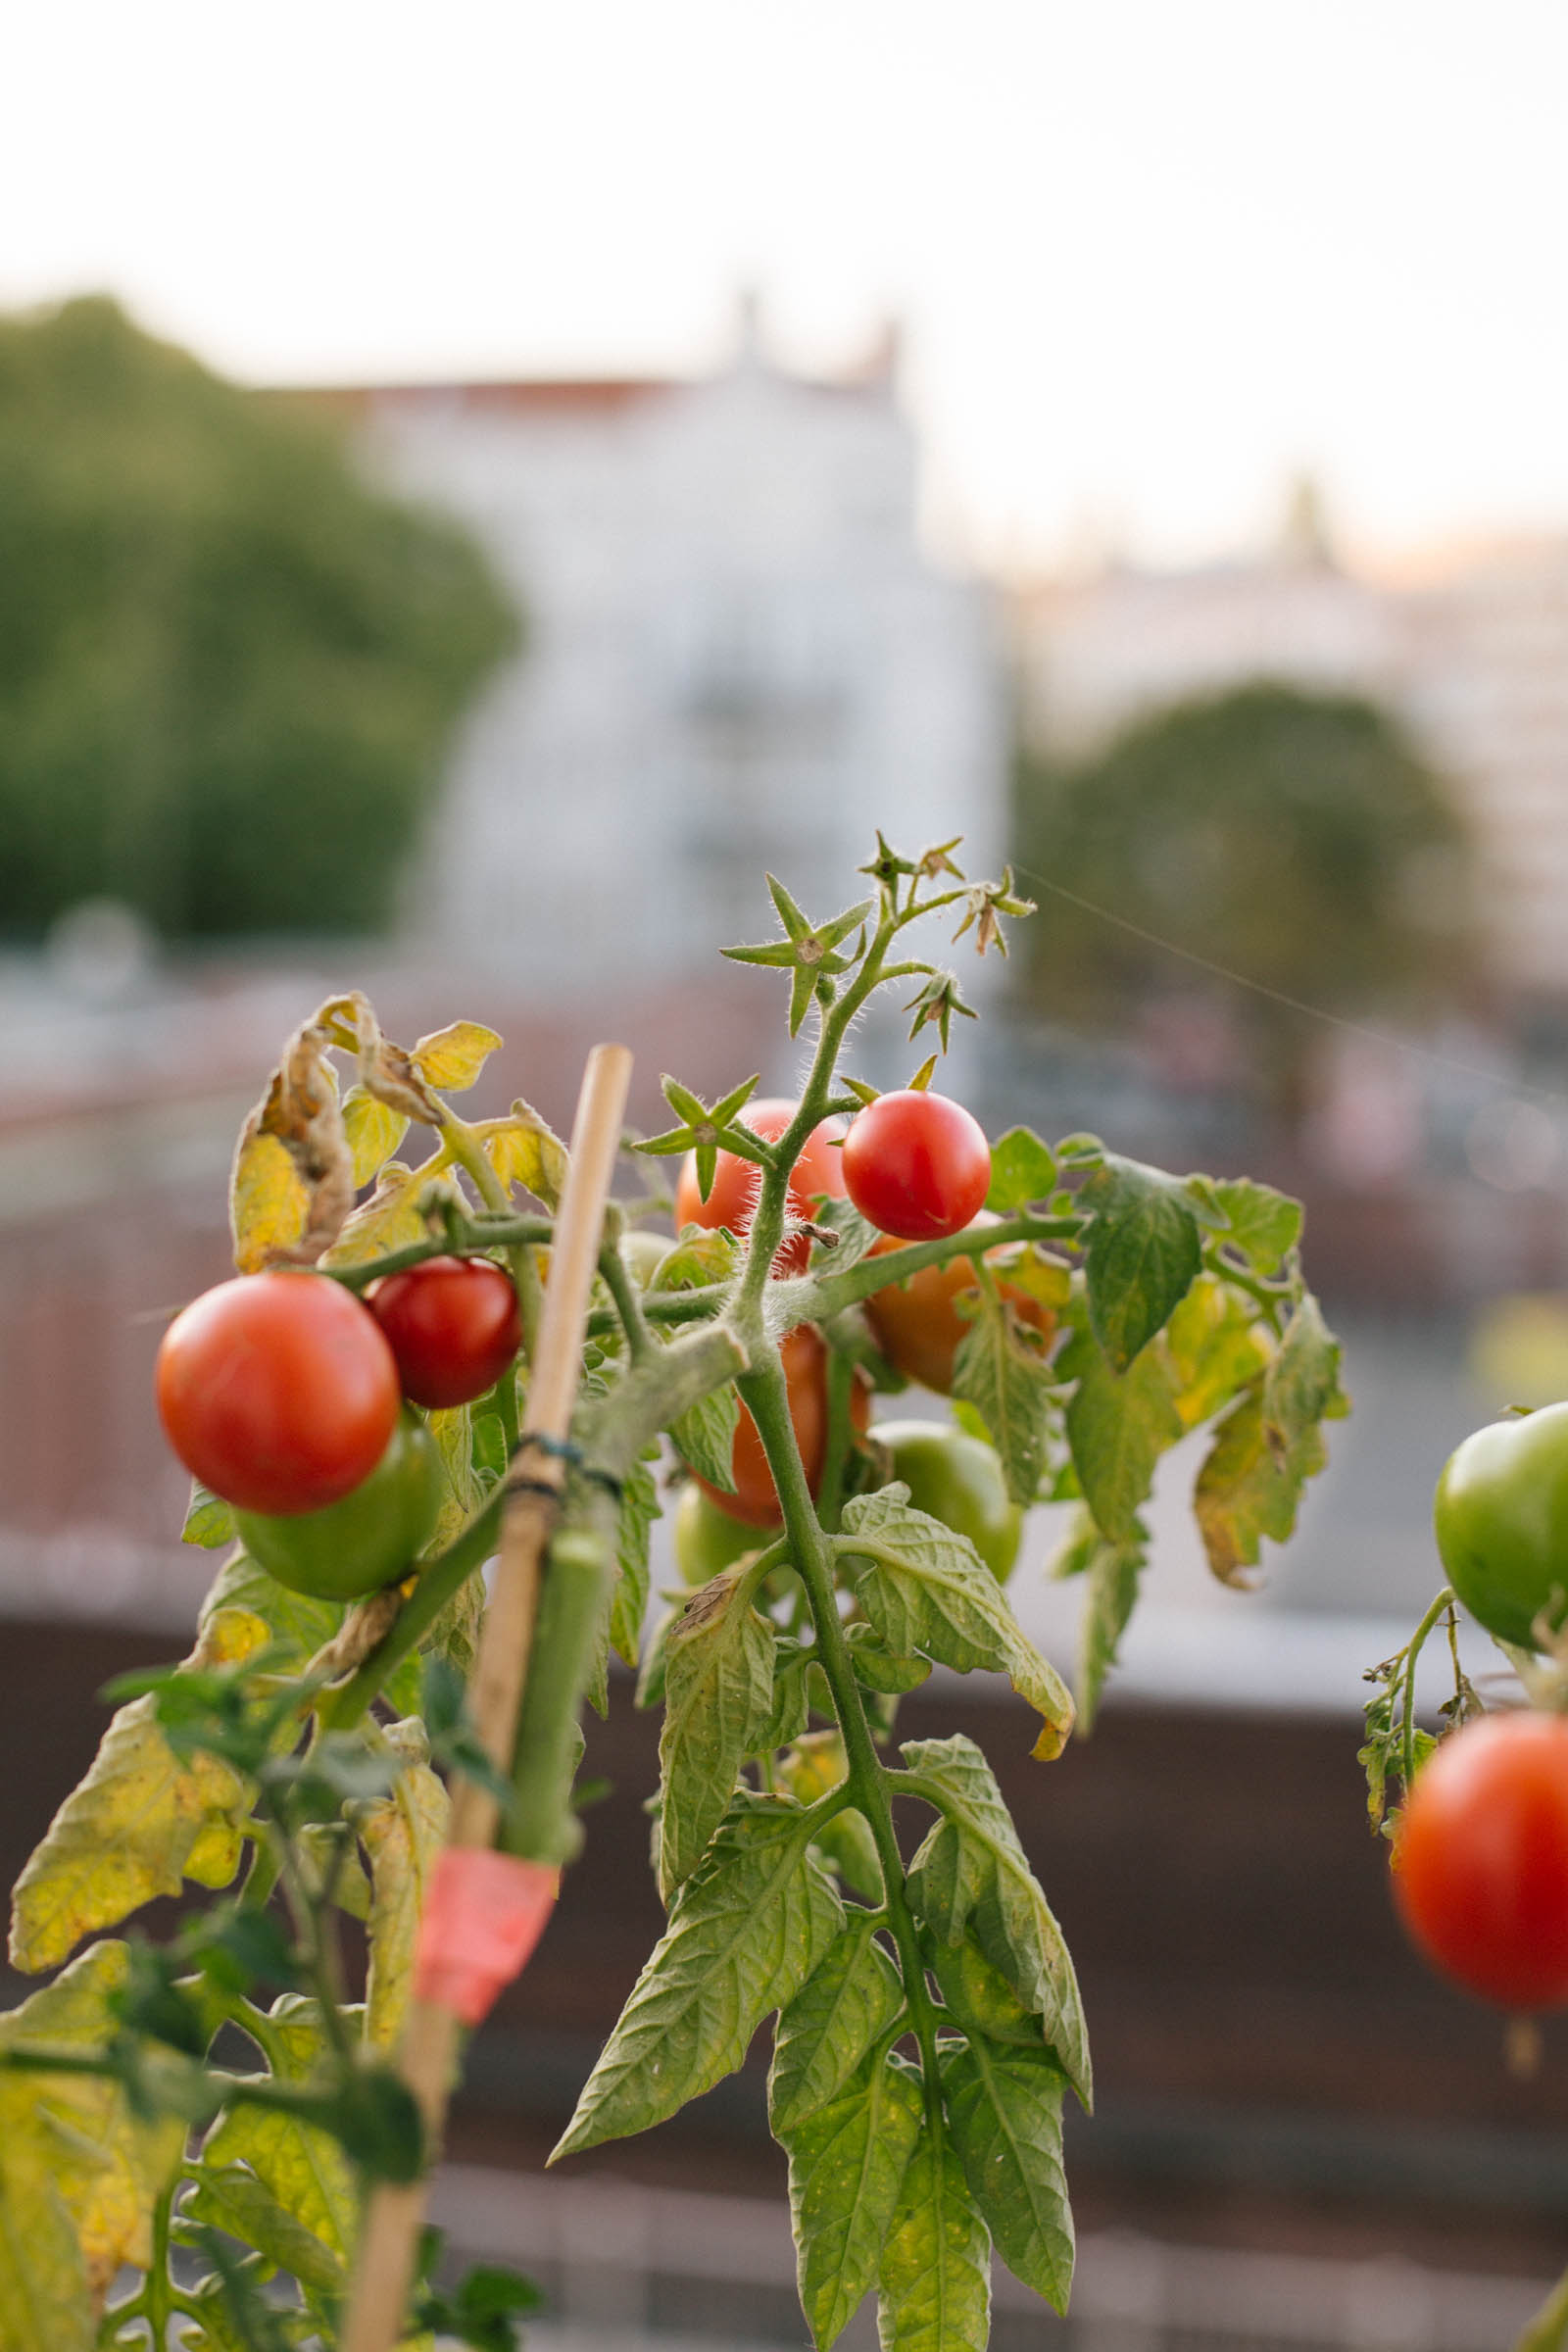 October 2015: The end of the tomato season.